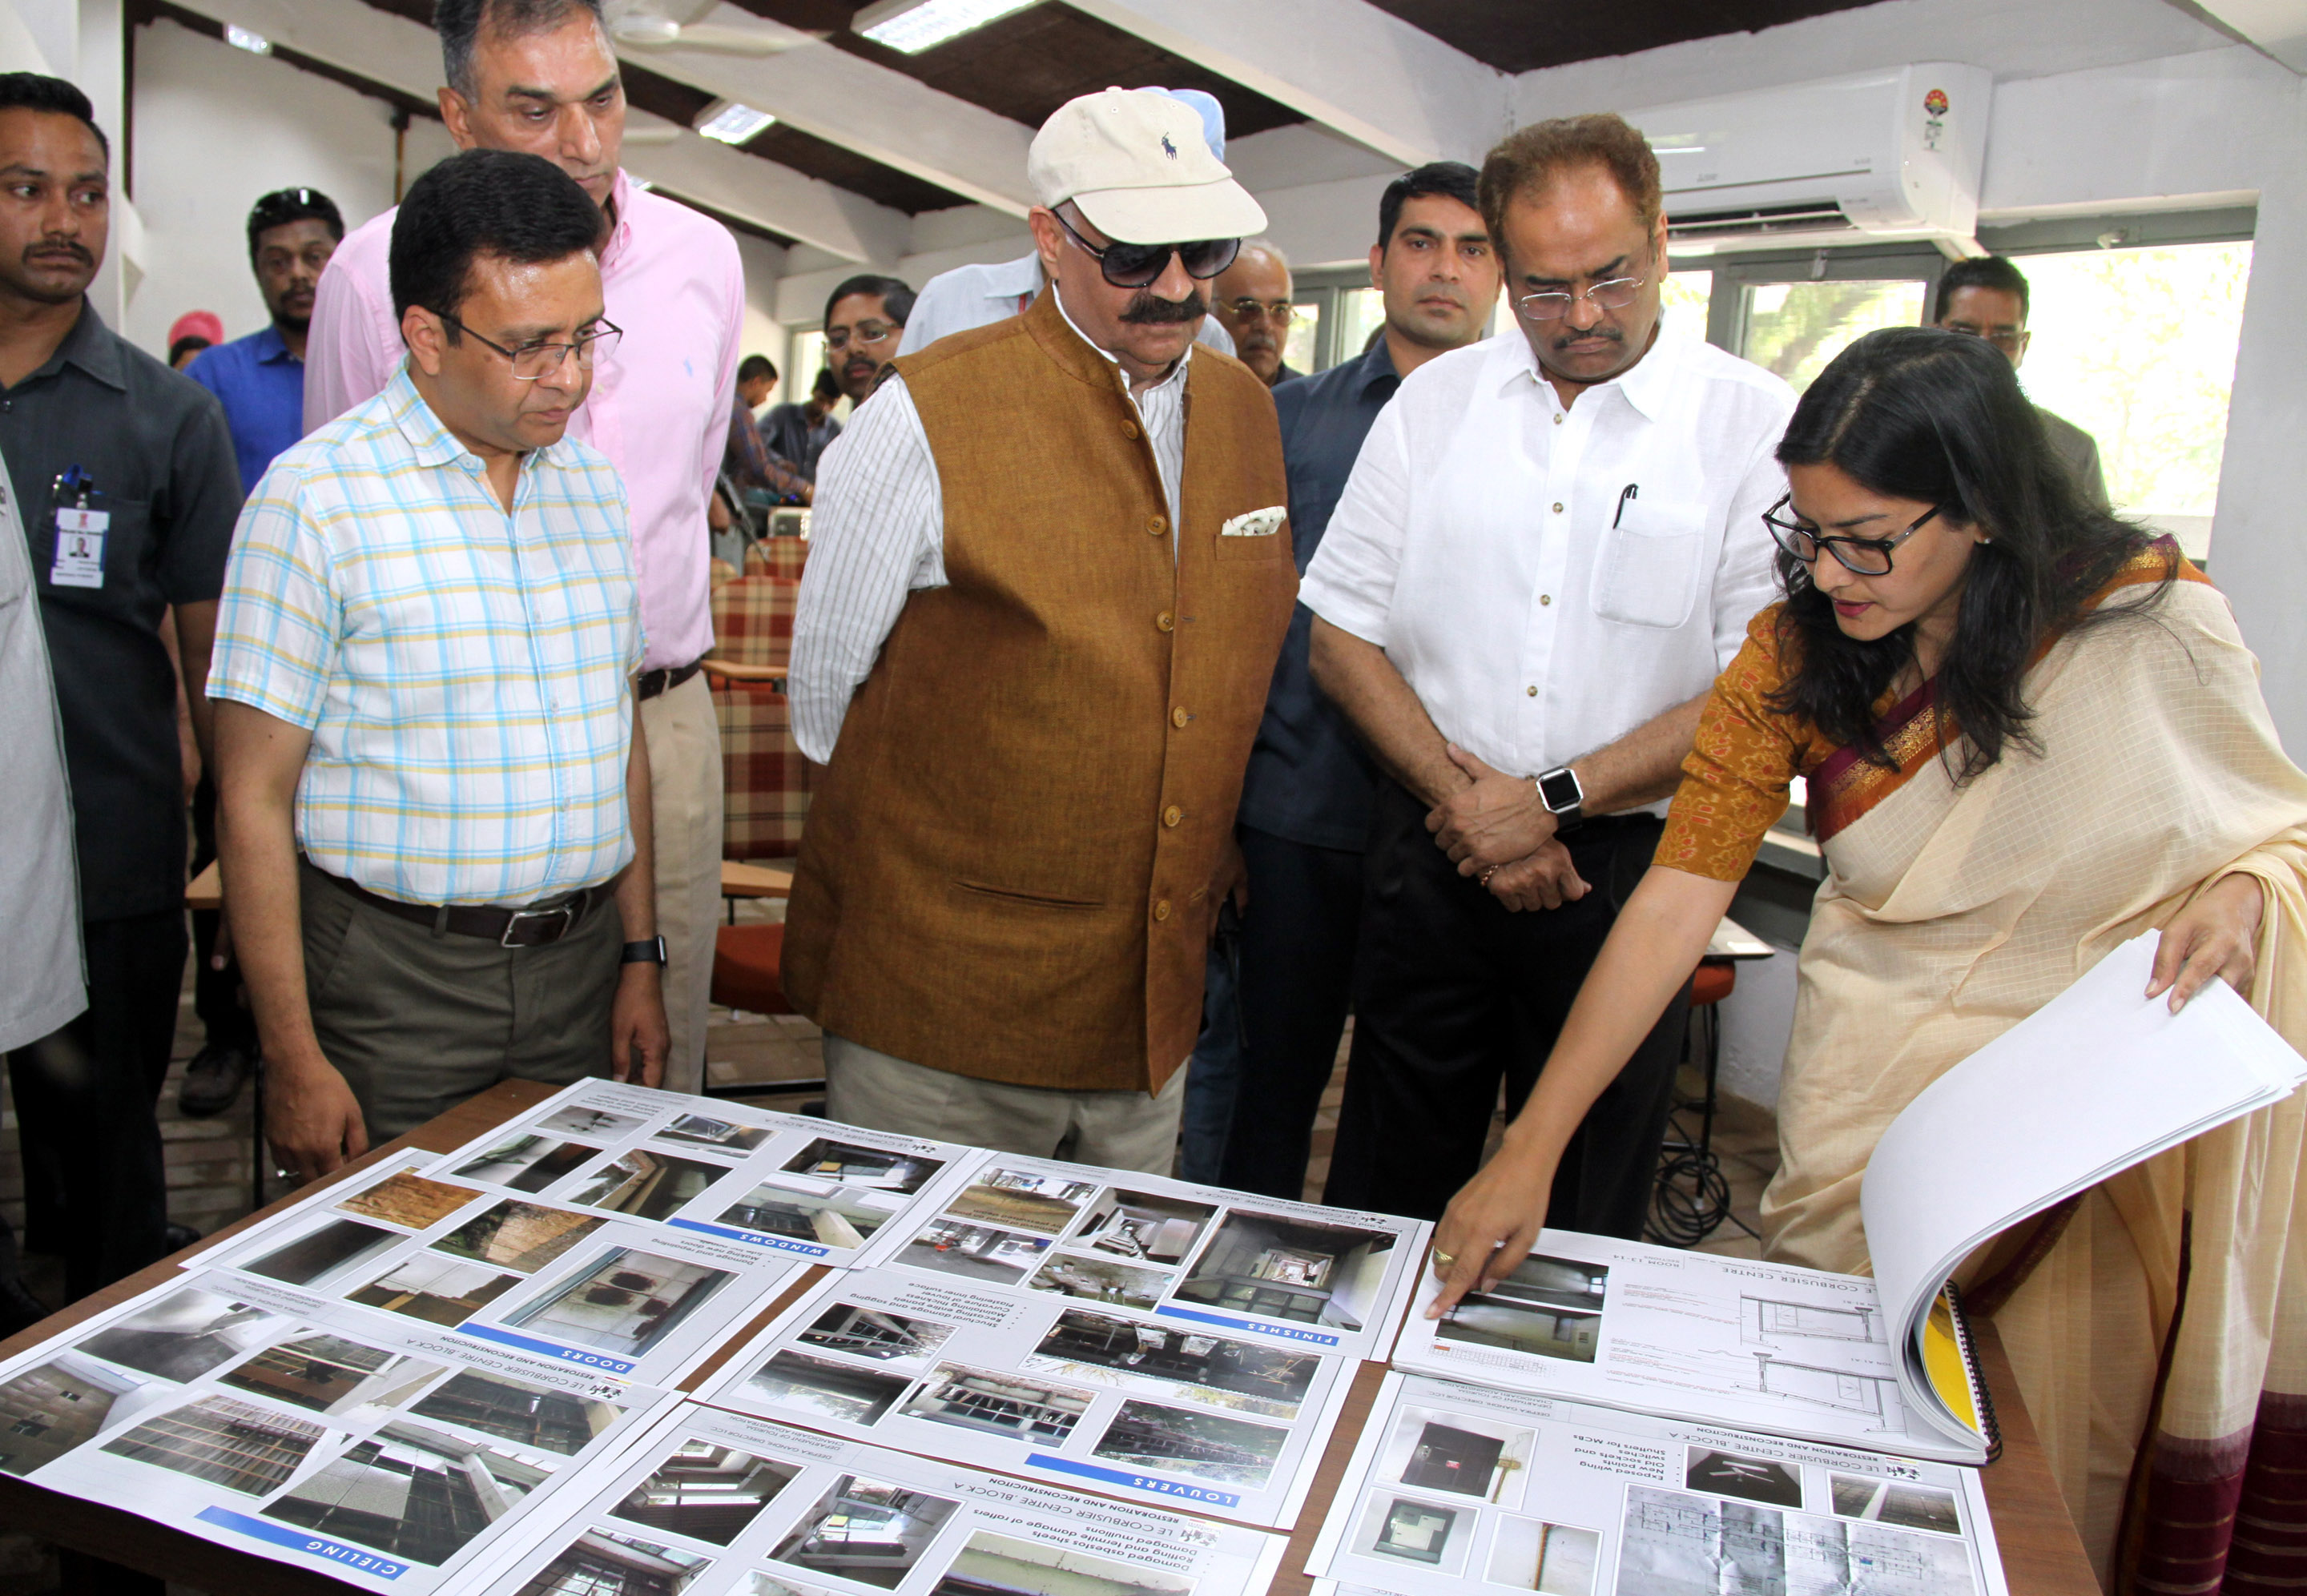 """The Governor of Punjab and Administrator, UT, Chandigarh, Shri V.P. Singh Badnore, the Adviser to the Administrator, UT, Chandigarh, Shri Parimal Rai alongwith senior officers taking a round of the  """"Open Hand Art Studio"""" after inaugurating on the occasion of 122nd Birth Anniversary of Pierre Jeanneret at Le Corbusier Centre, Sector-19, Chandigarh on Tuesday, April 17, 2018."""